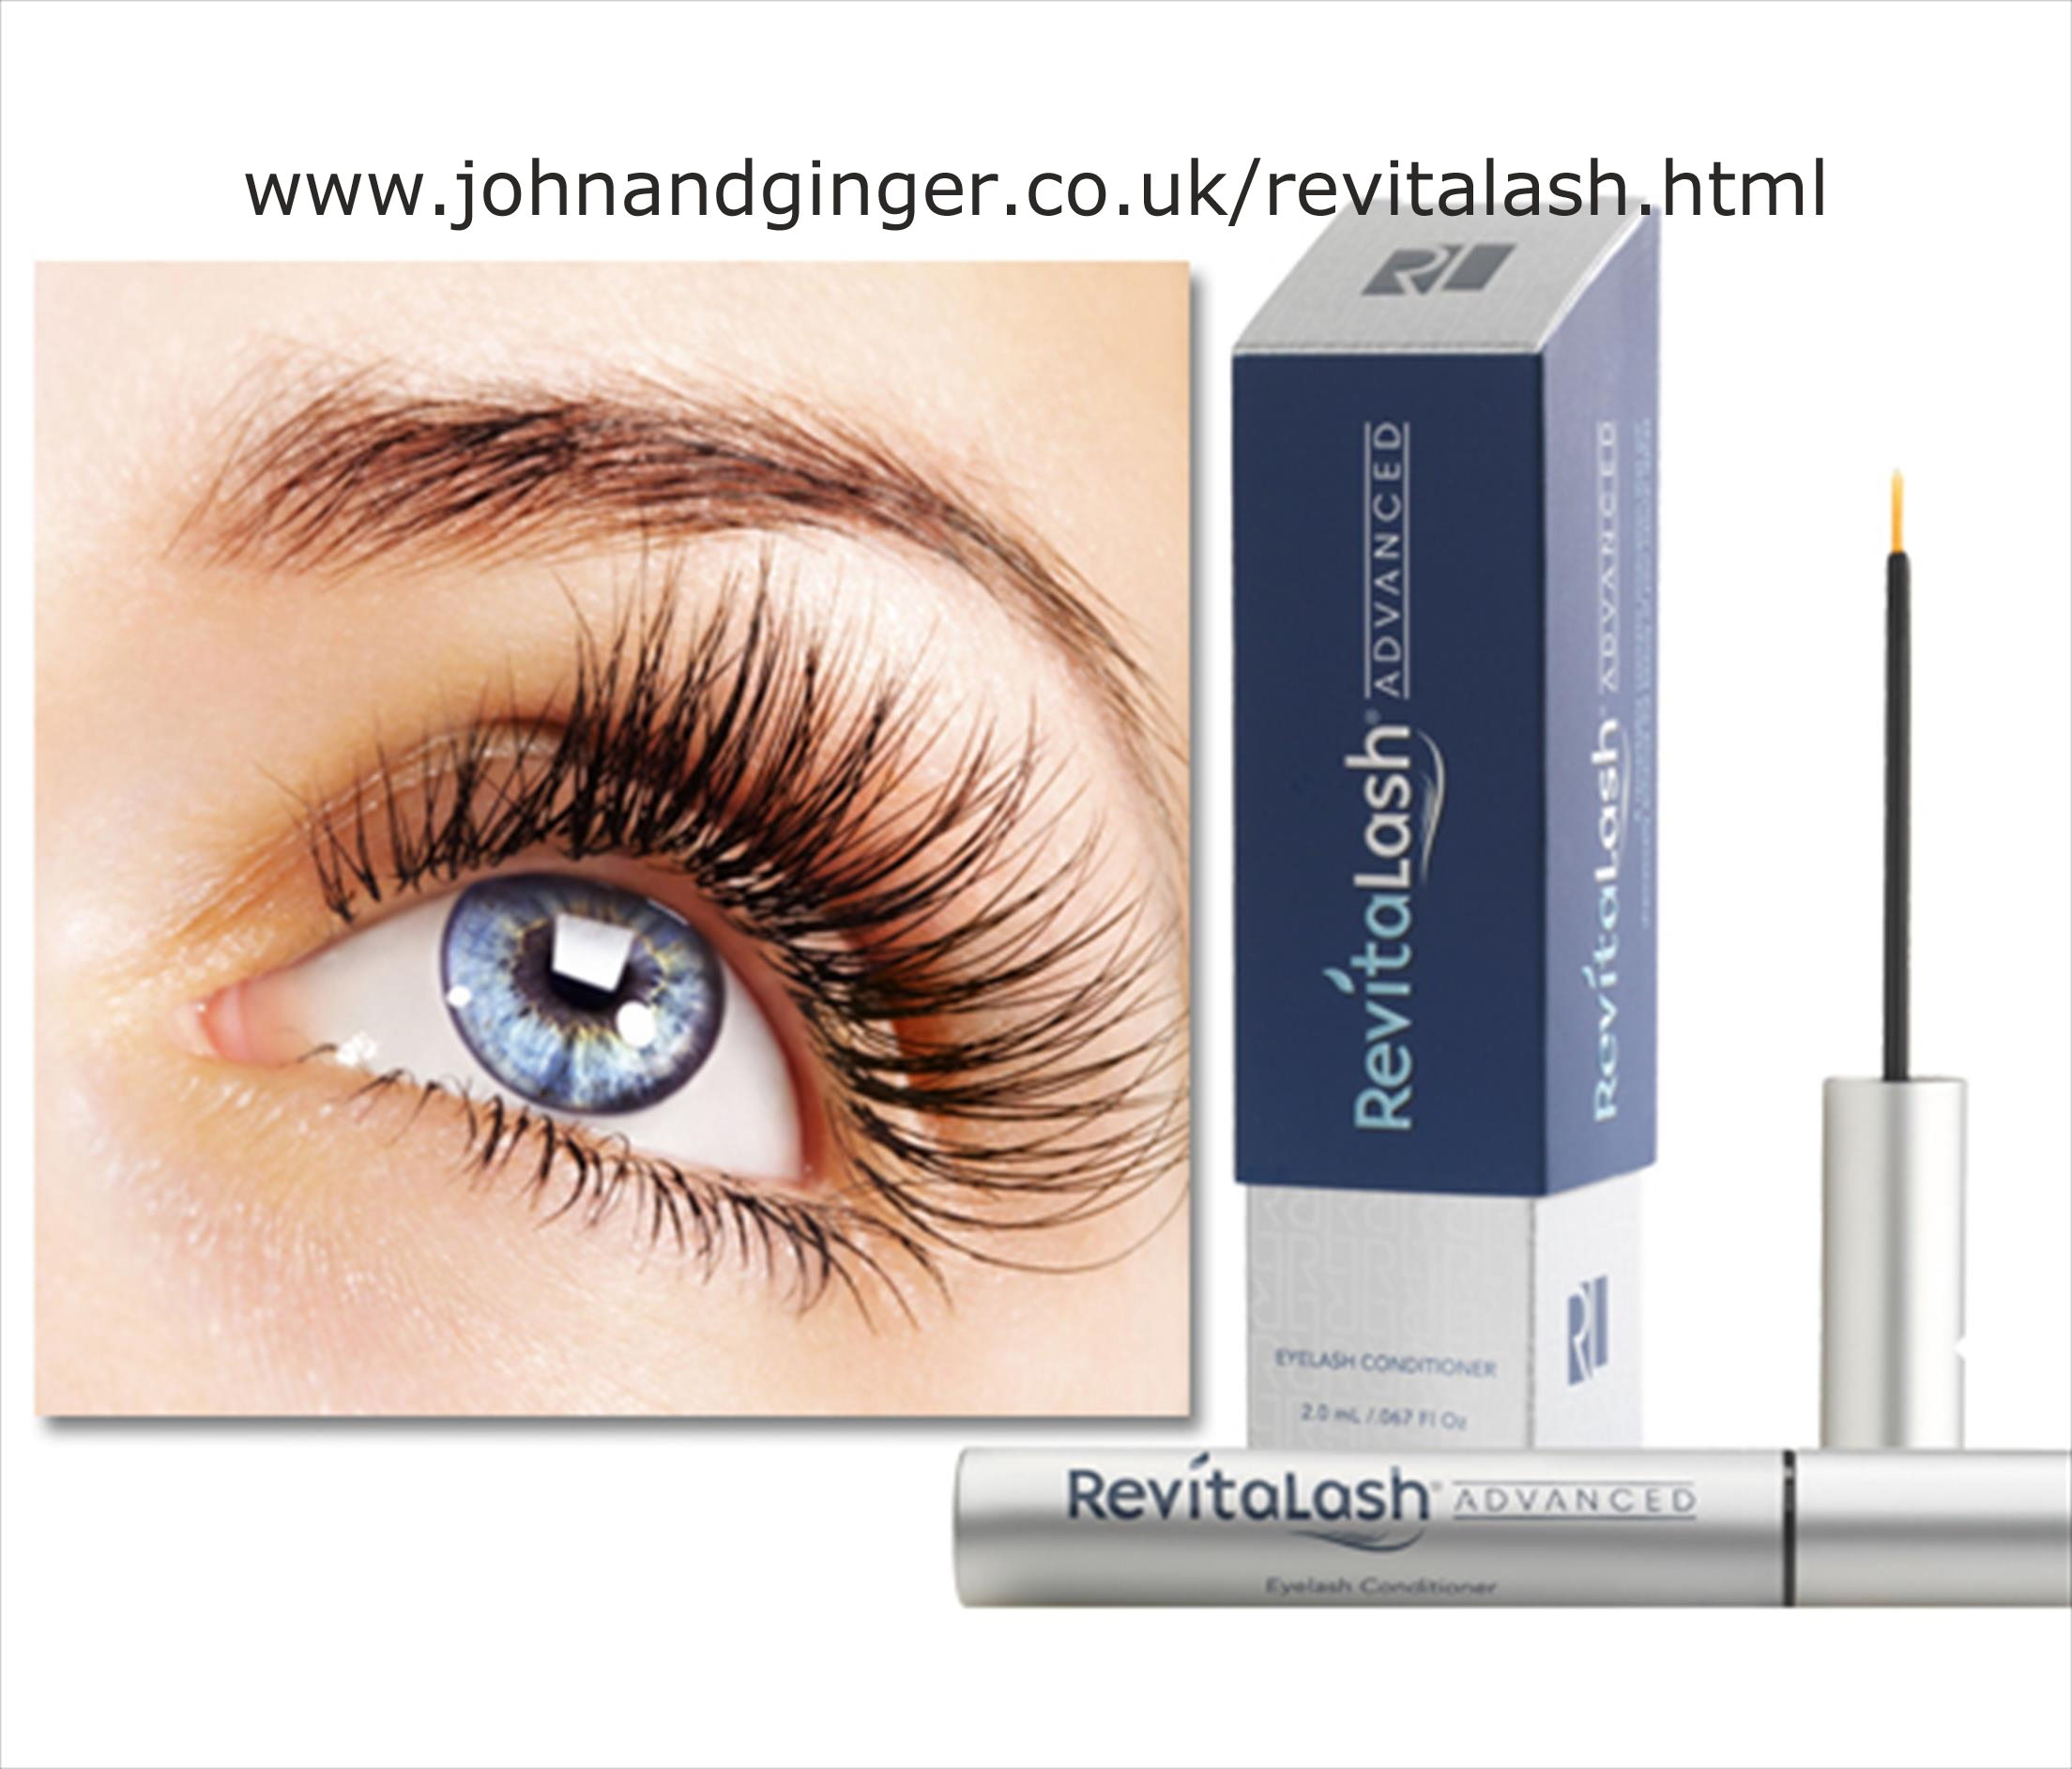 87accf0e53b Revitalash Advanced Eyelash Conditioner with powerful peptides and  botanicals will treat your eyelashes so that they look more beautiful and  youthful within ...